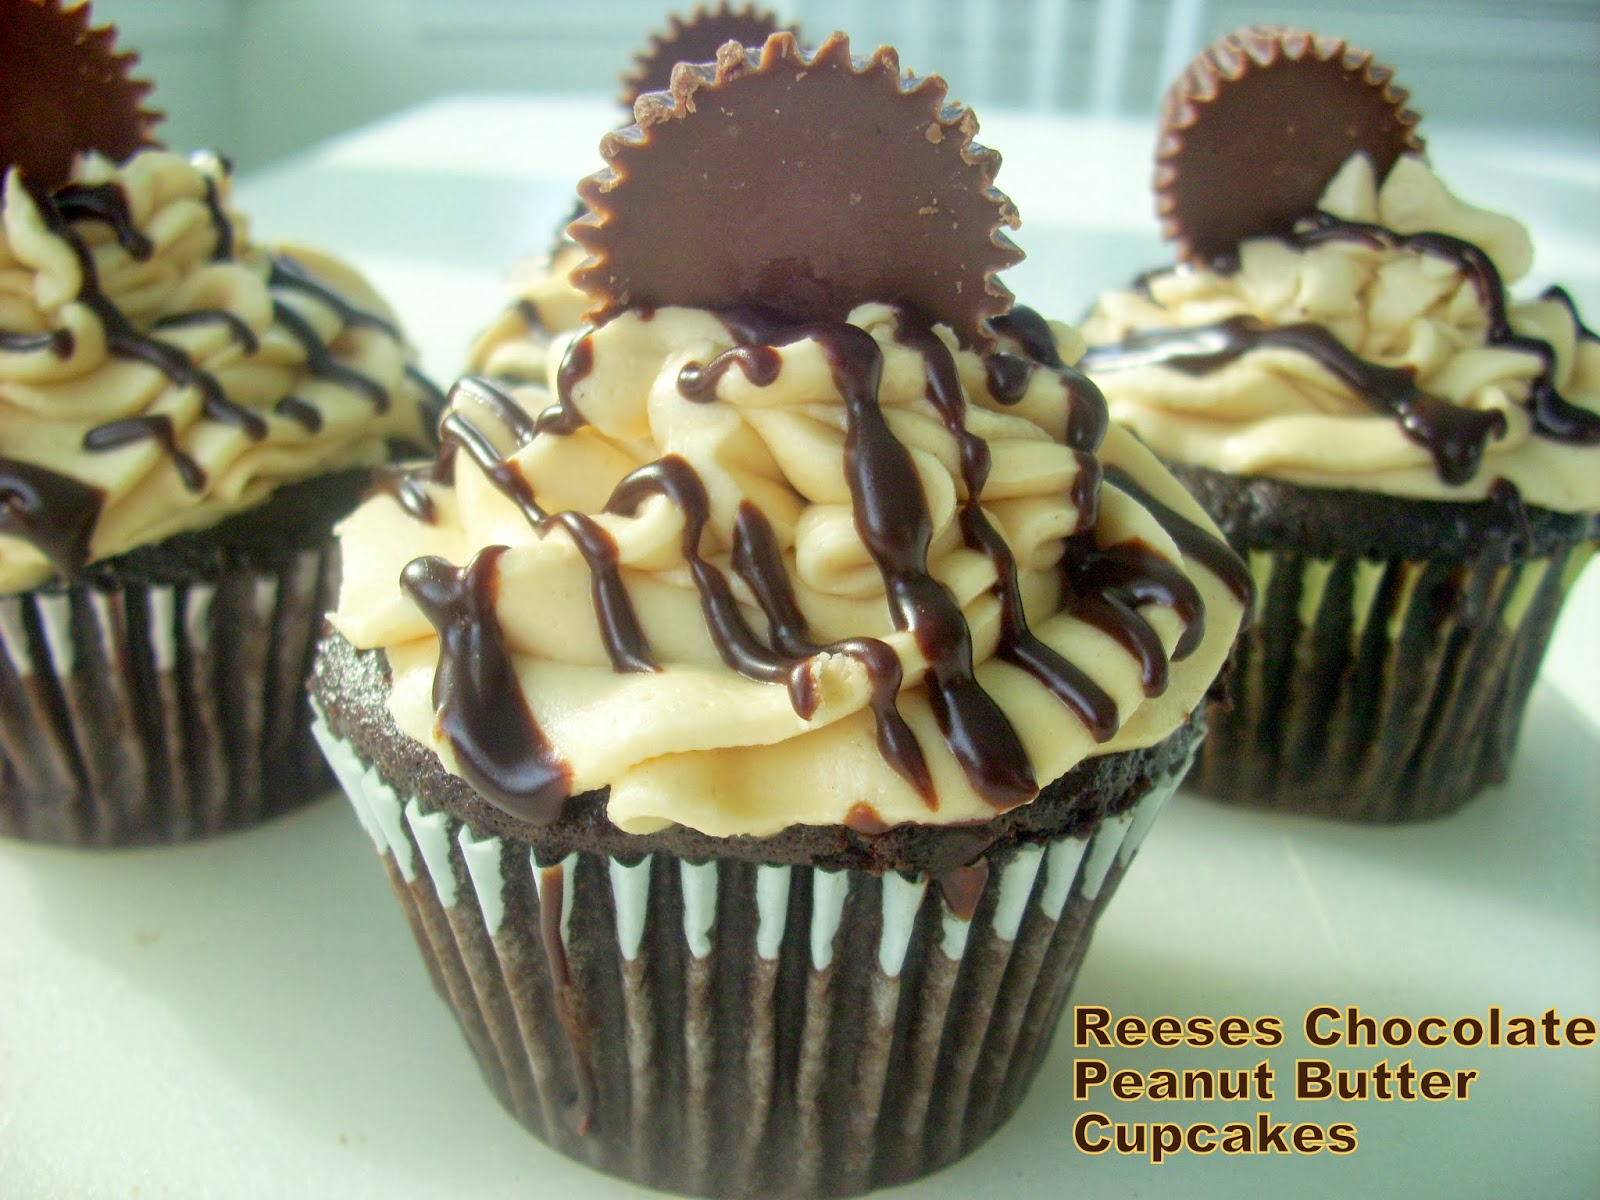 Flavors by Four: Reese's Chocolate Peanut Butter Cupcakes